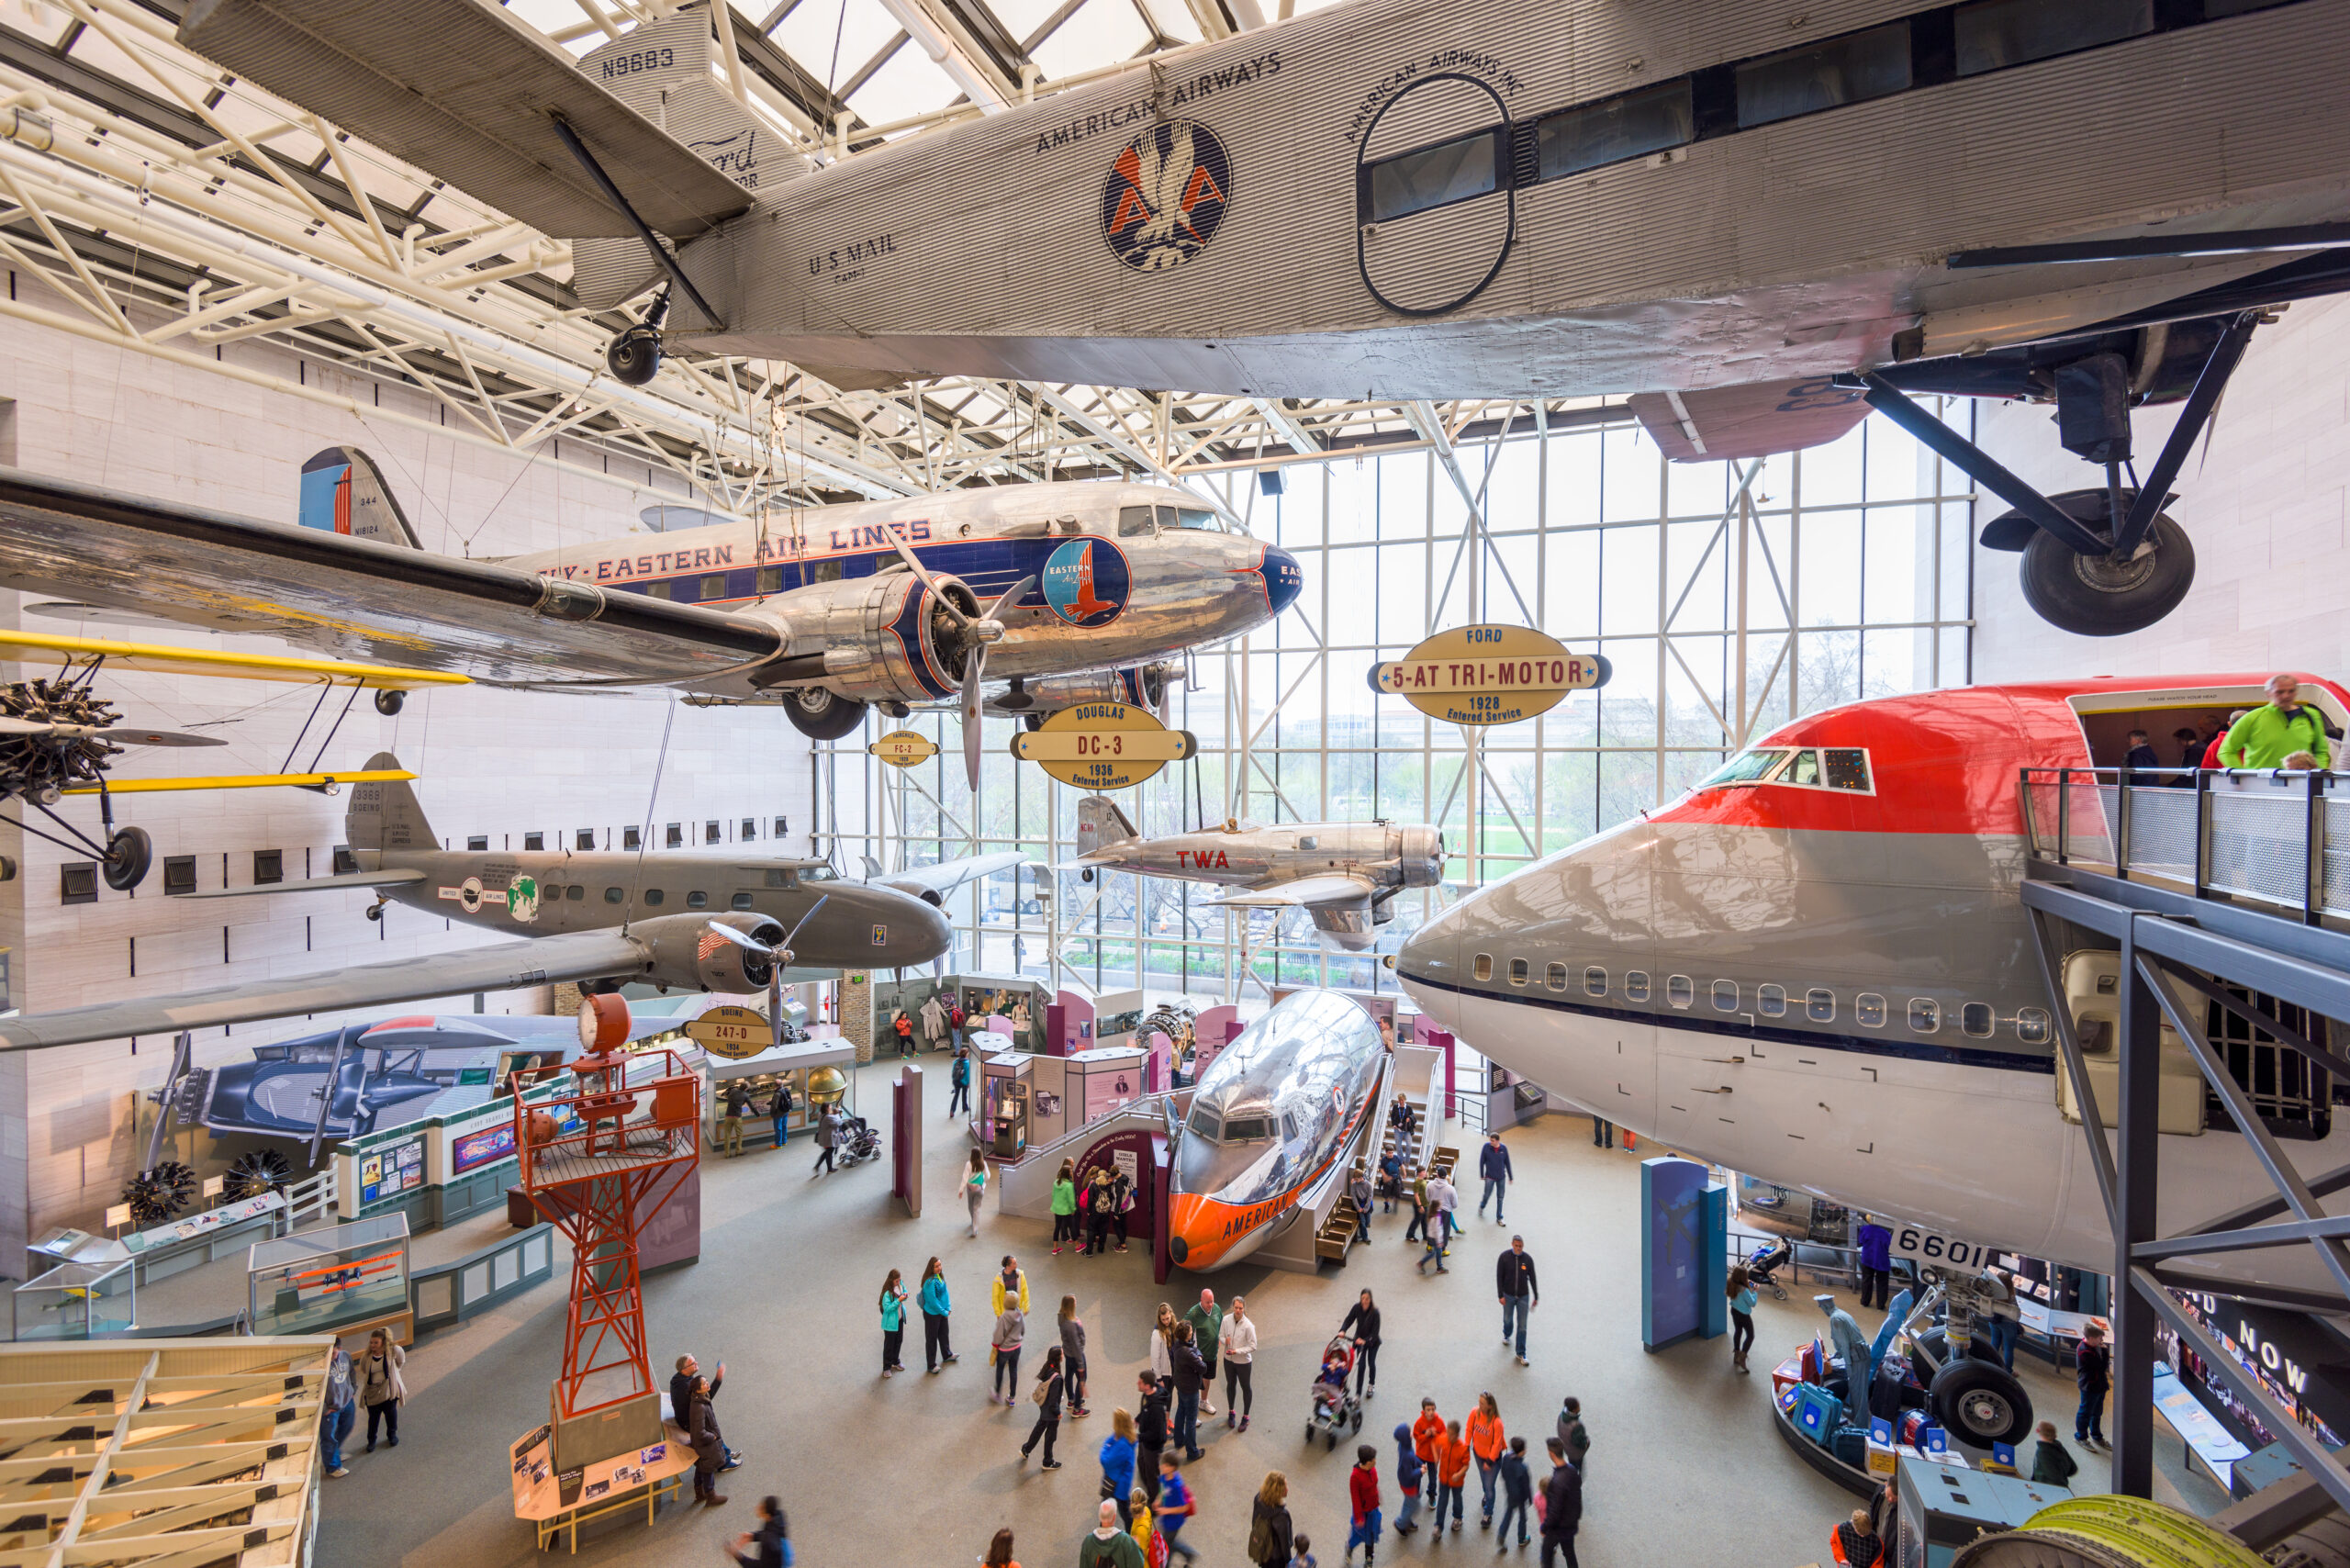 Visitors enjoy The National Air and Space Museum of the Smithsonian Institution in Washington DC.